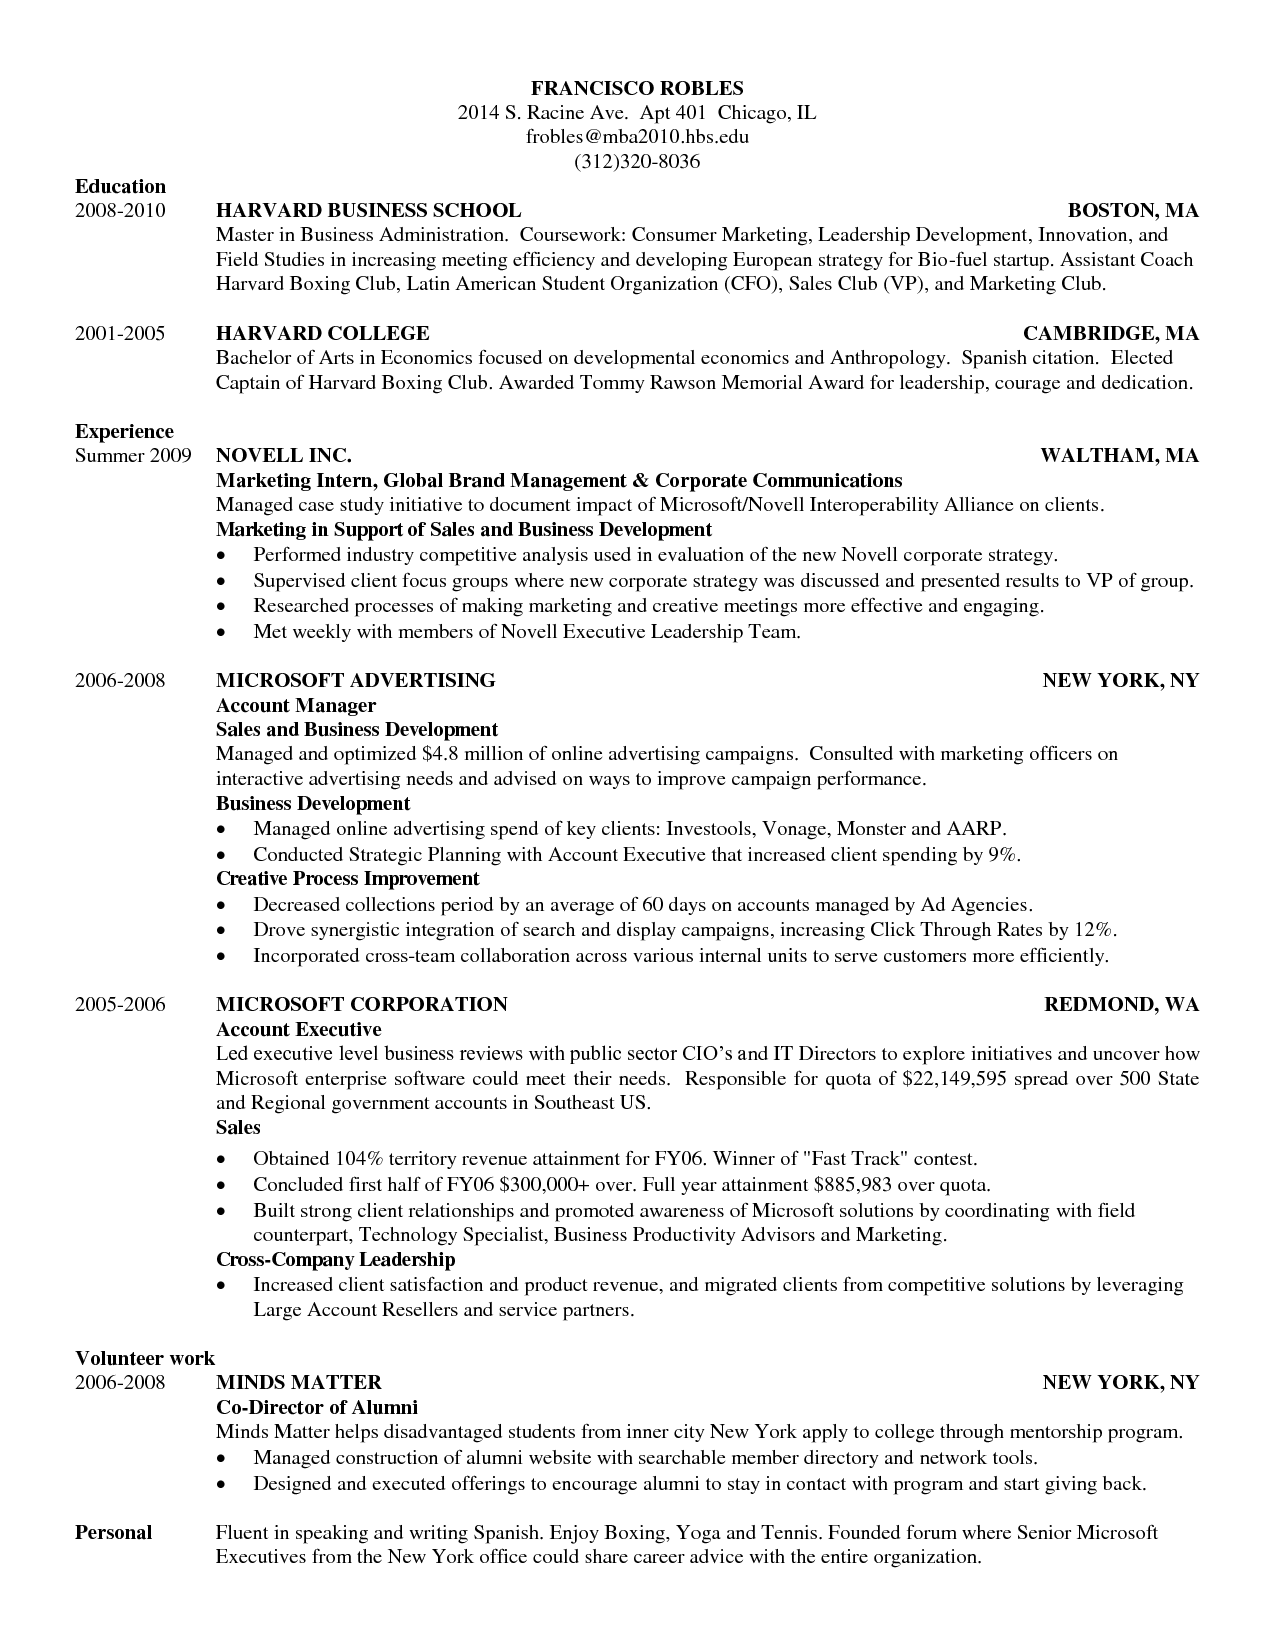 Doc 618800 Harvard Business School Resume Template Sample For Mba Admission Interview